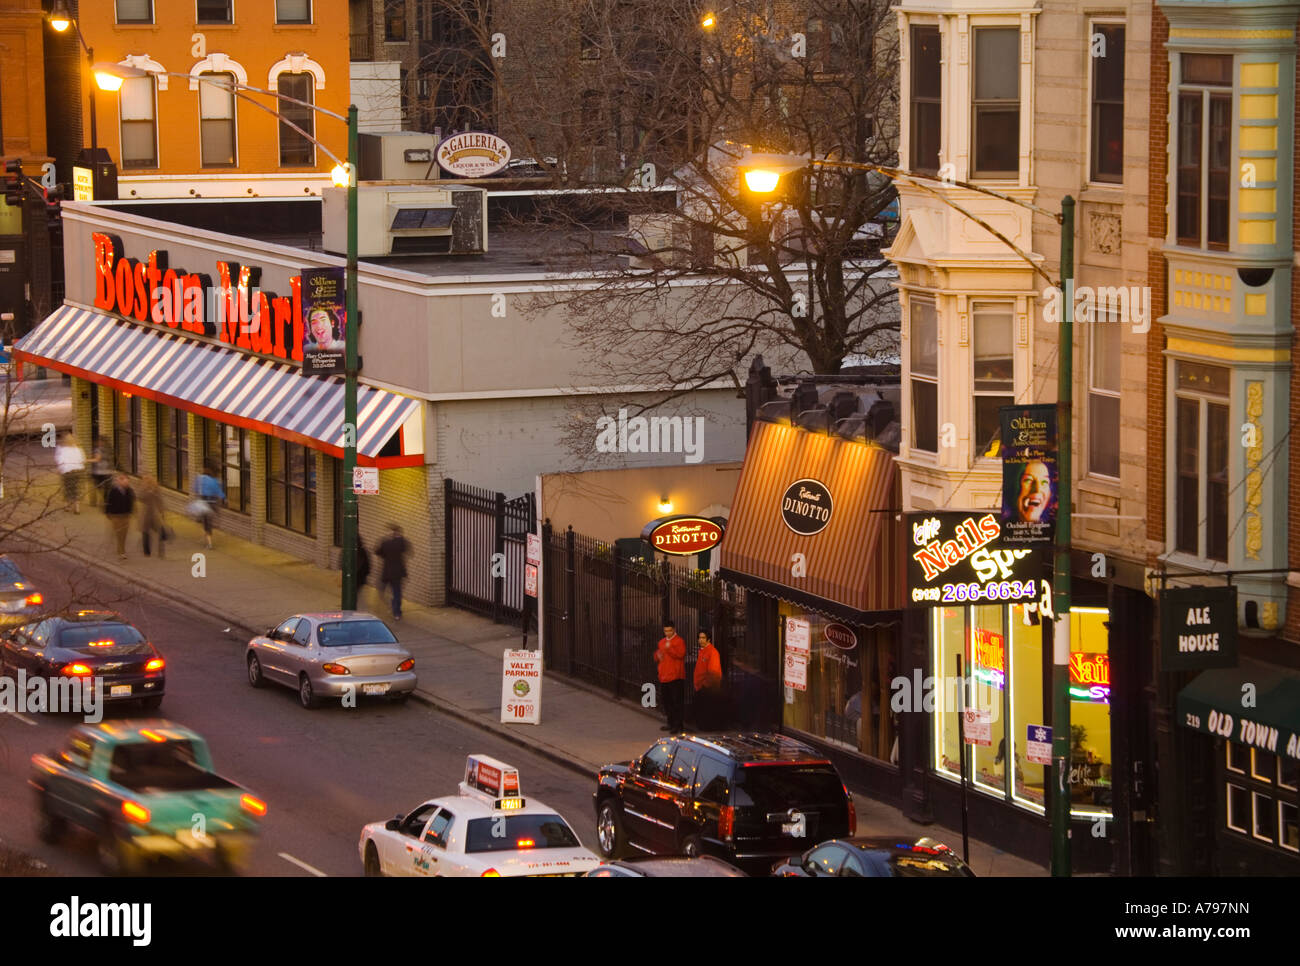 Chicago Illinois Restaurants Stores And Businesses On North